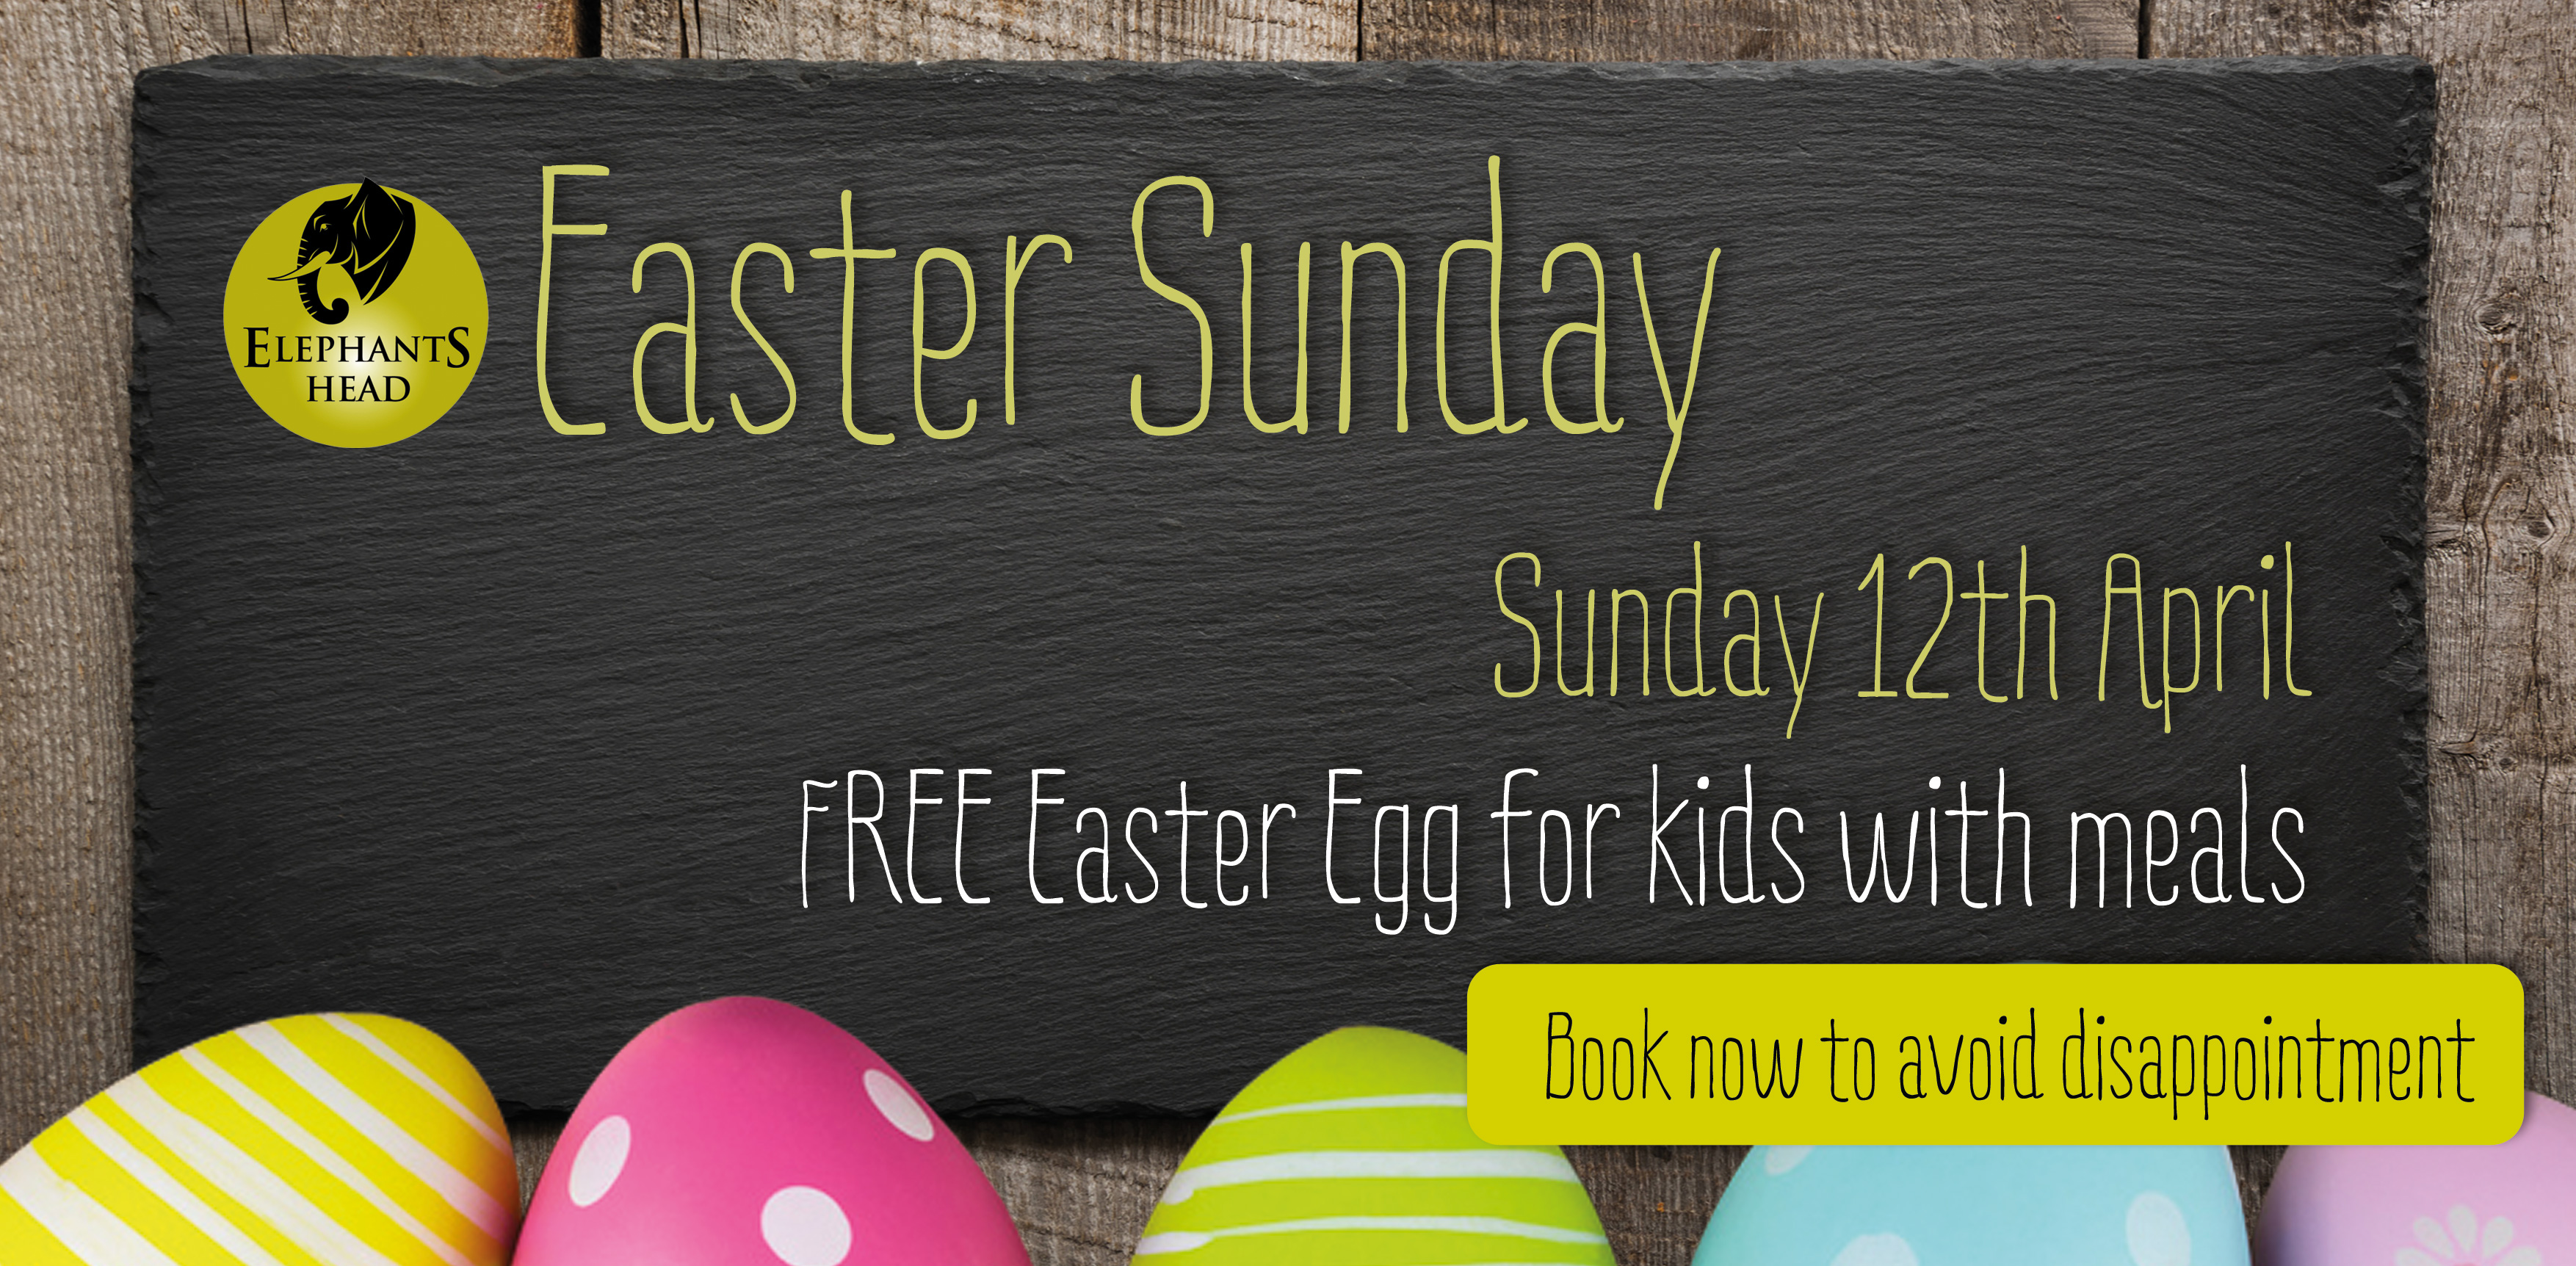 Easter Sunday at The Elephants Head